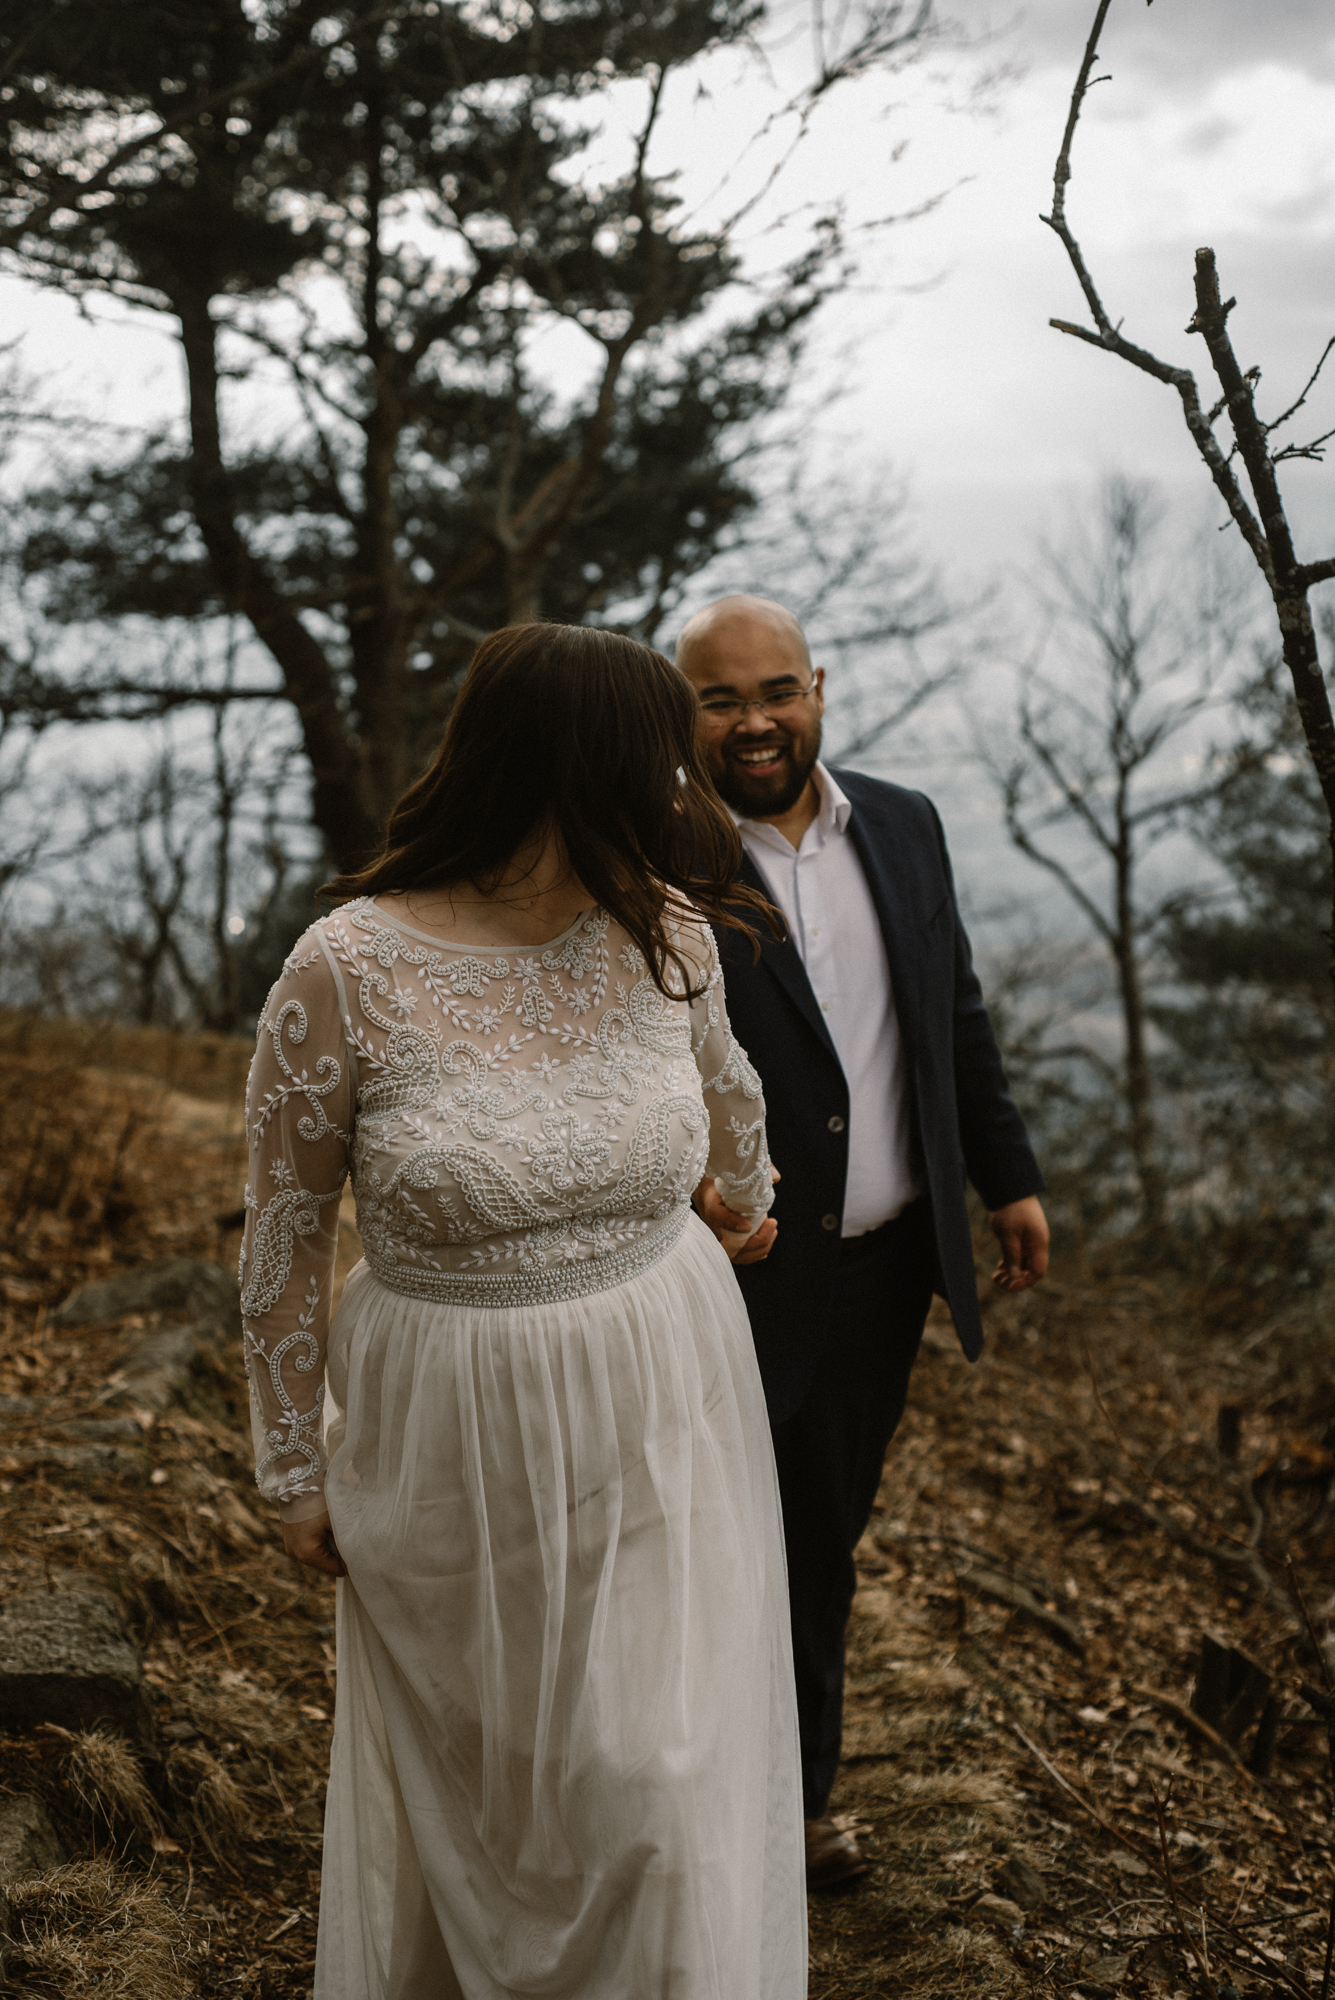 Emma and Jeddah - Intimate Luray Wedding - Shenandoah National Park Wedding - Adventure Elopement in Virginia - Shenandoah National Park Elopement_73.jpg